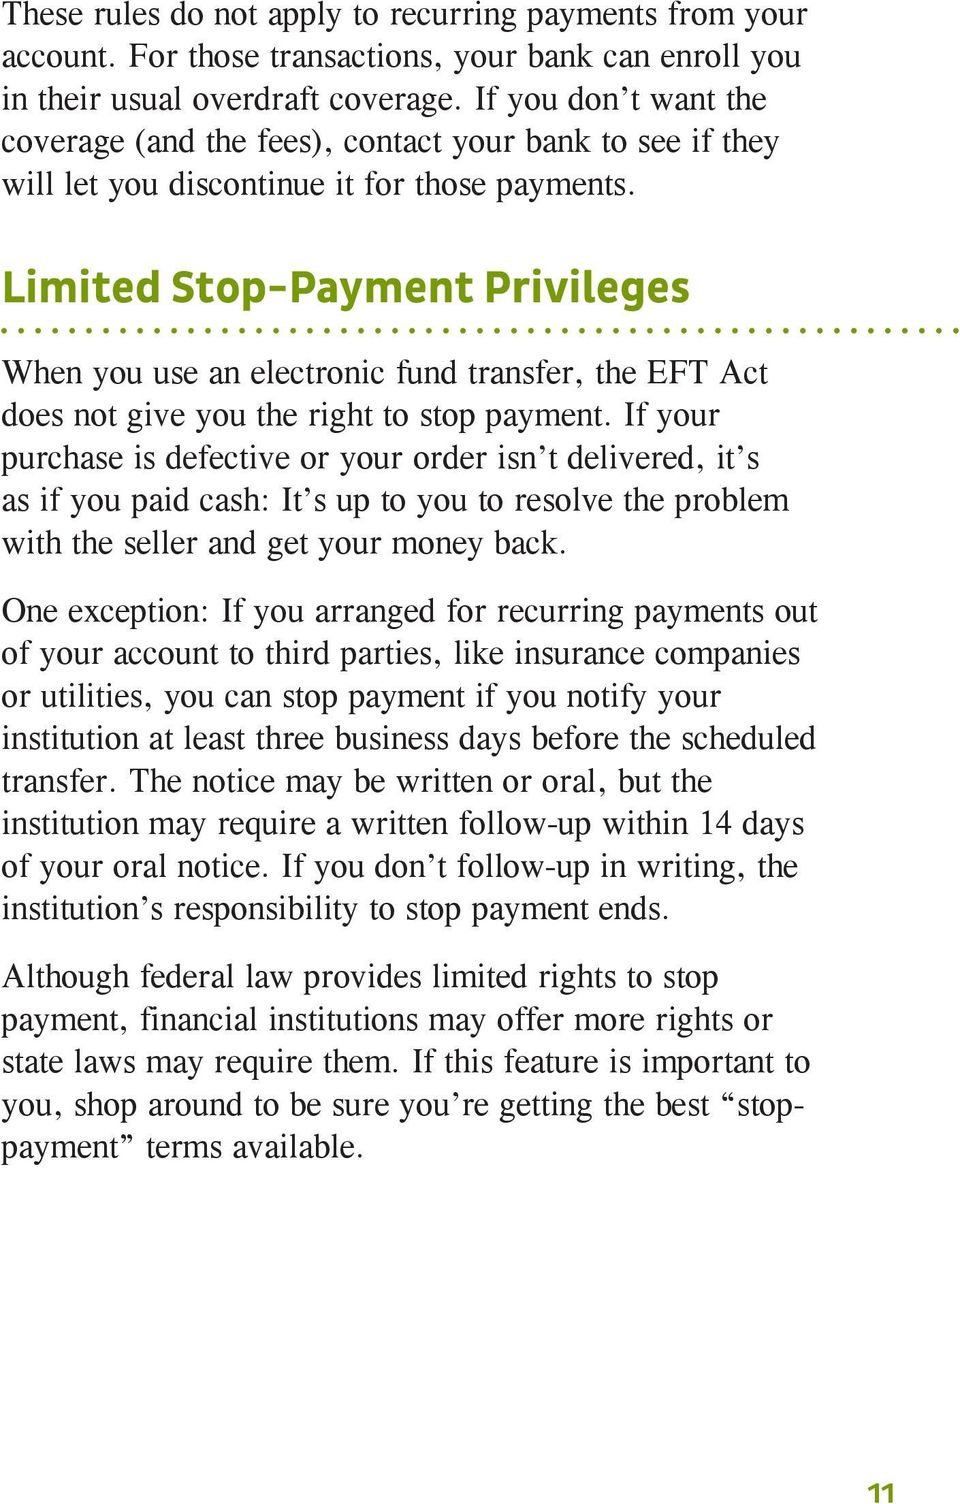 Limited Stop-Payment Privileges When you use an electronic fund transfer, the EFT Act does not give you the right to stop payment.